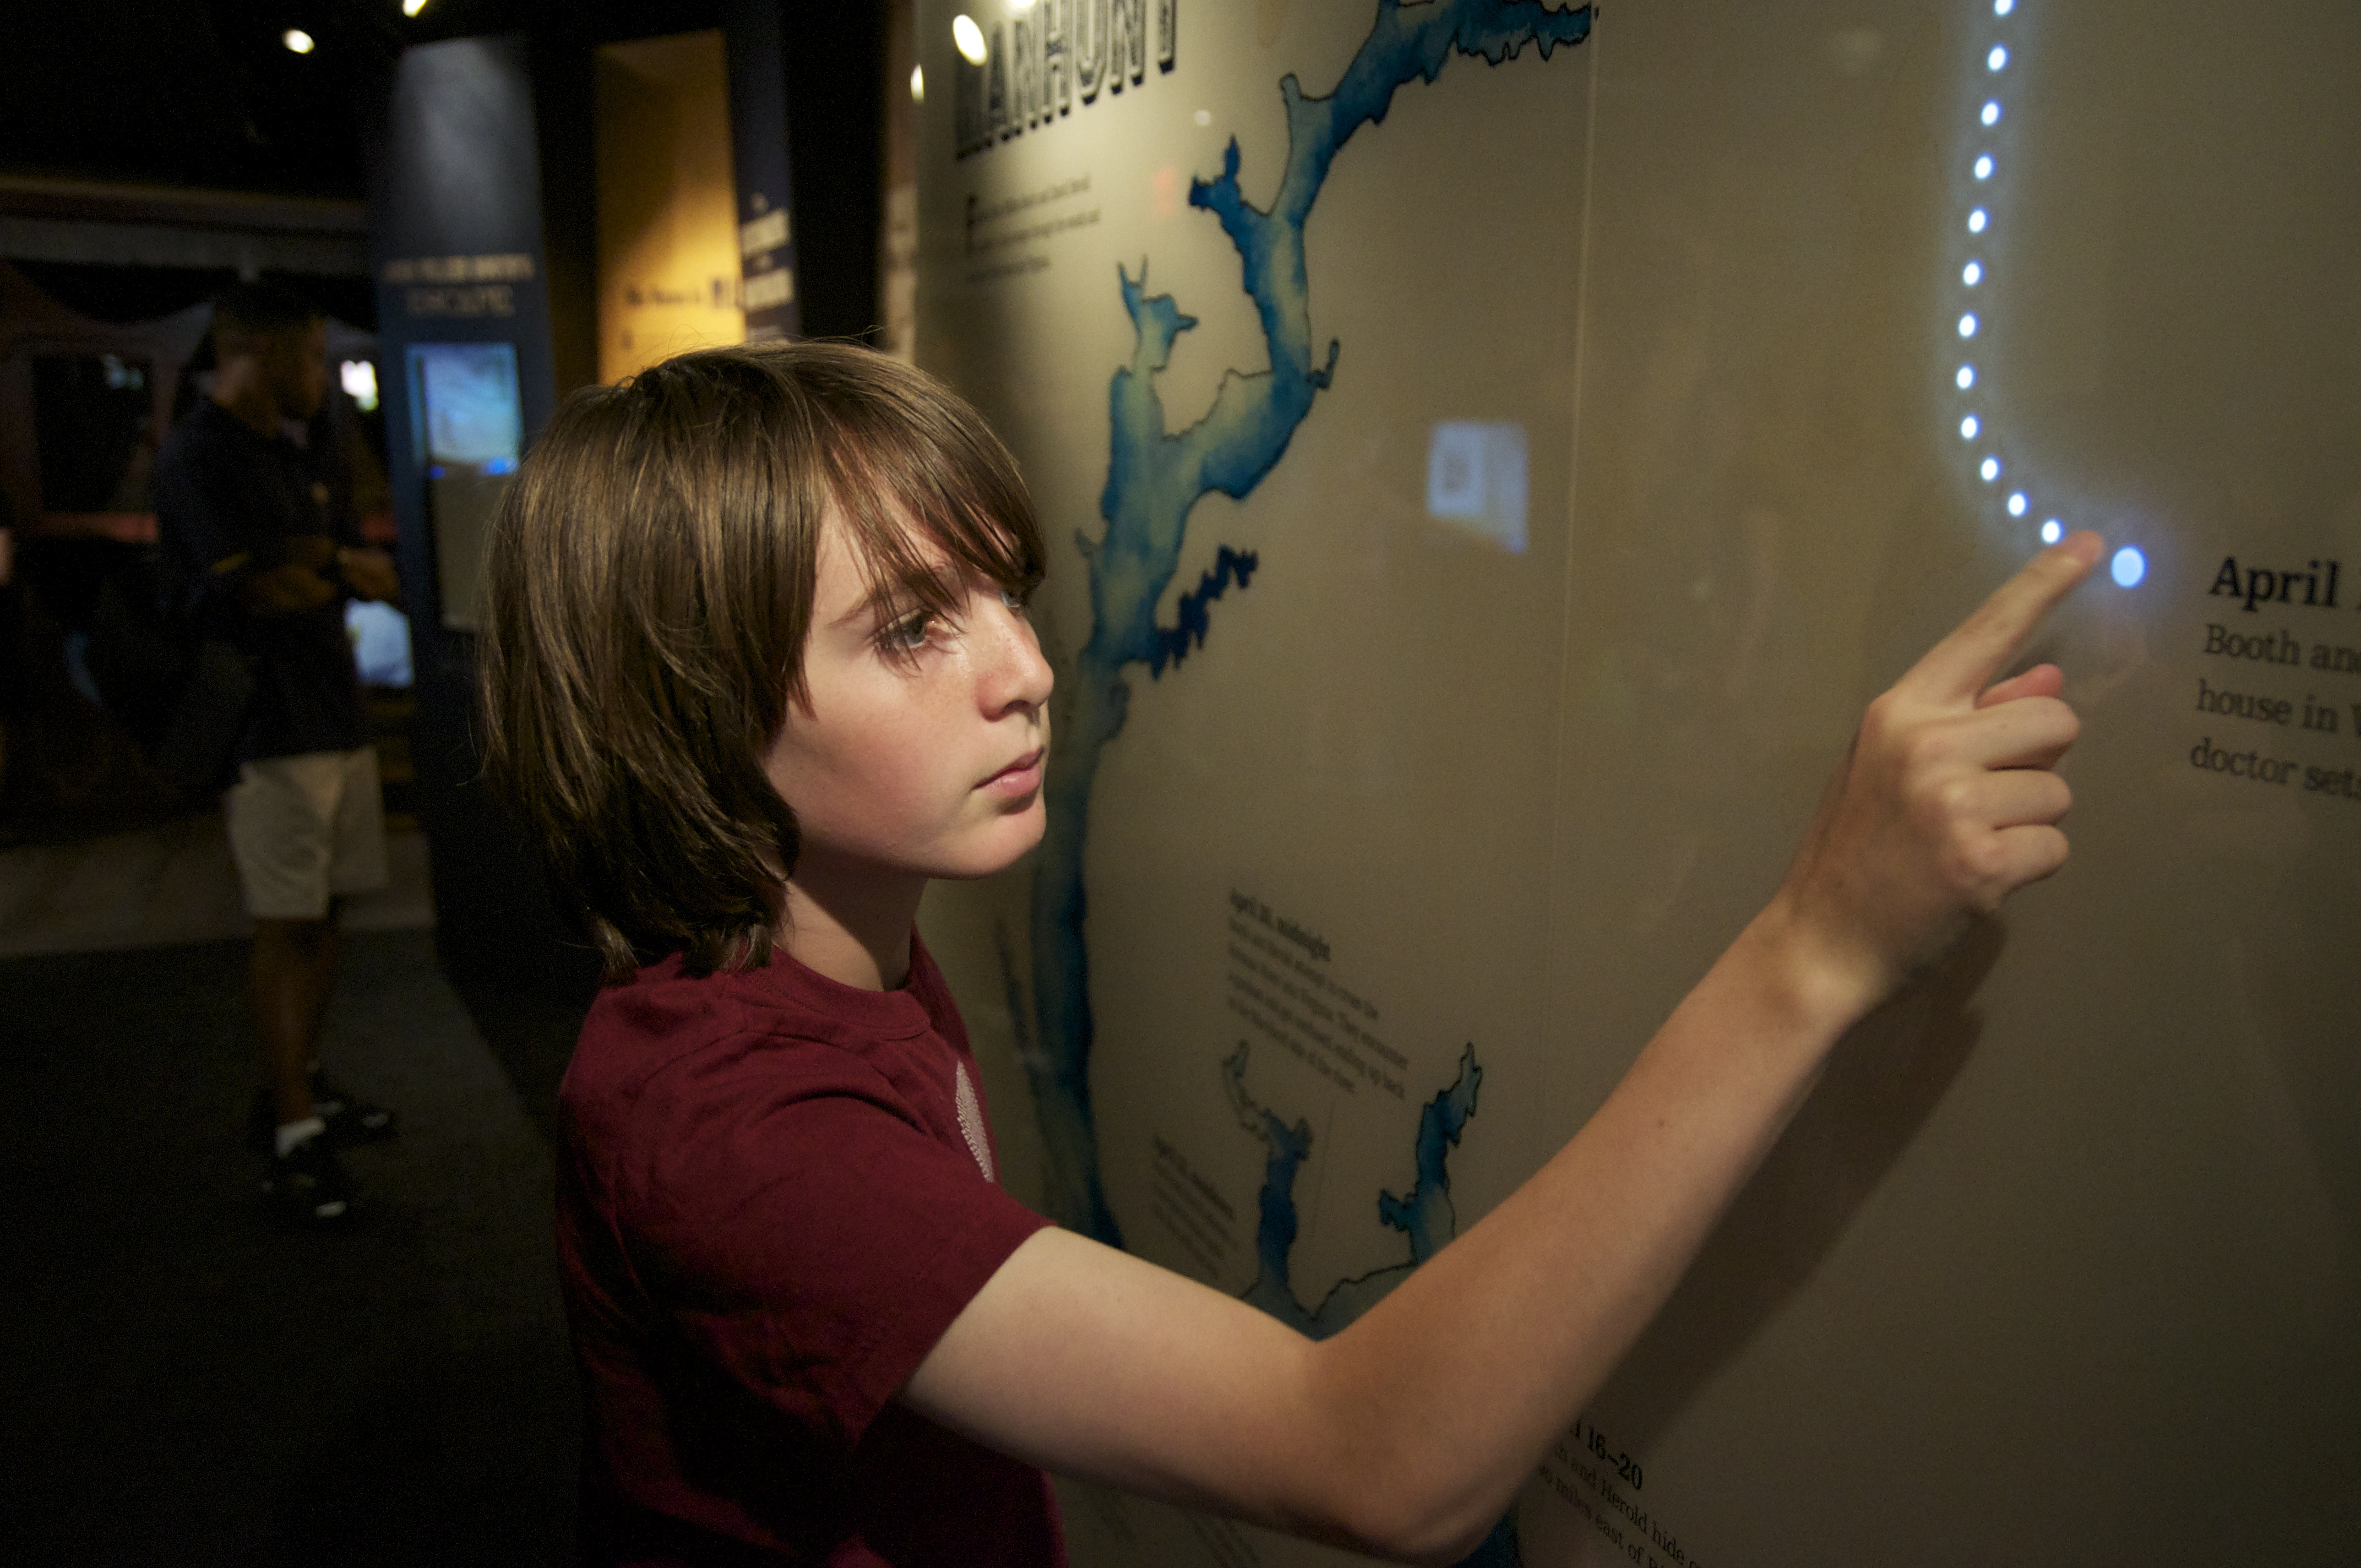 An elementary-age boy with brown hair and a red short-sleeved shirt stands at a light-up map that traces the escape route of assassin John Wilkes Booth from Ford's Theatre. The map is within the exhibits at the Center for Education and Leadership.